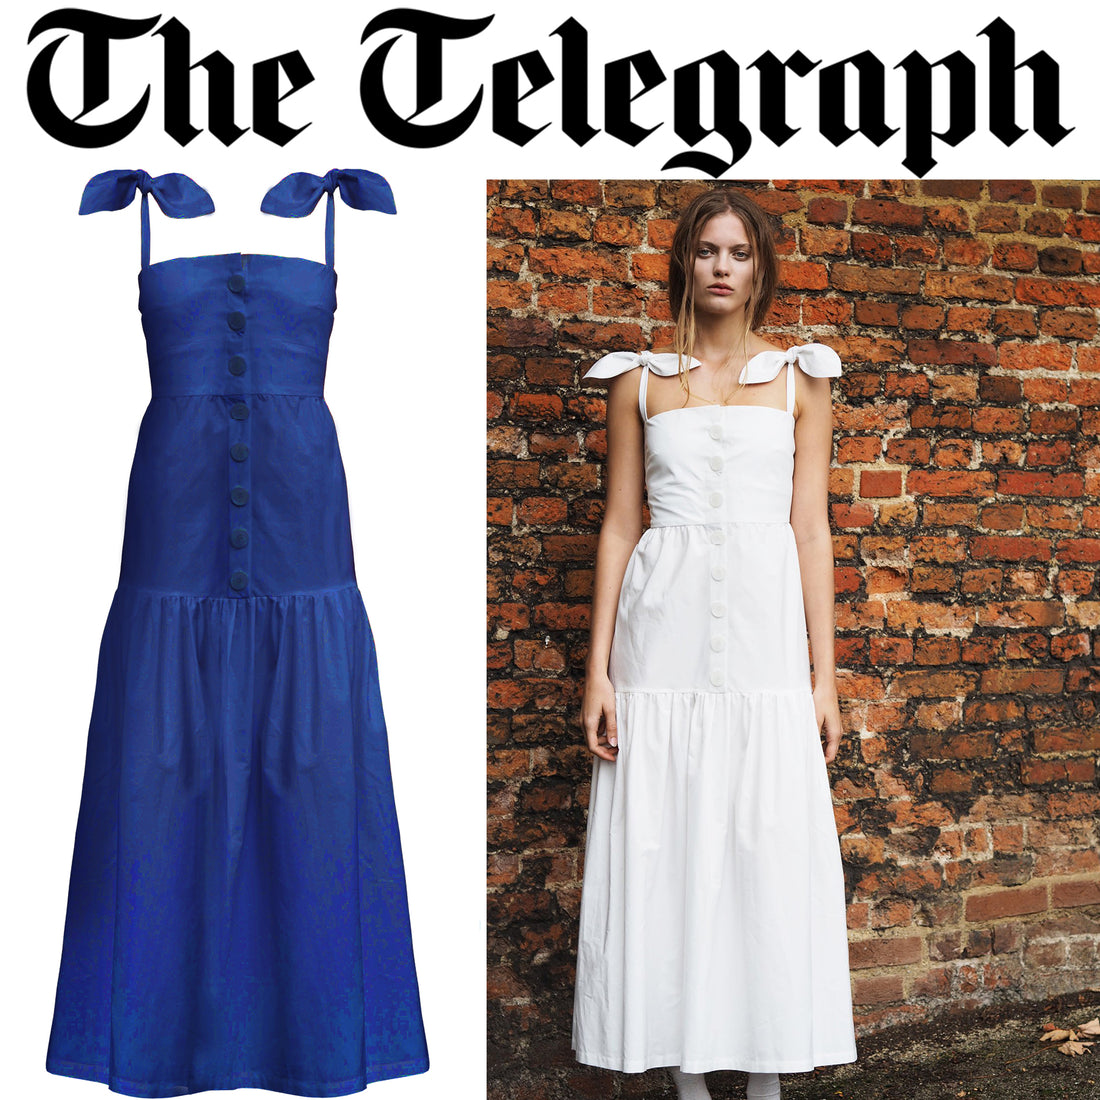 SS18 Primrose Dress Featured by The Telegraph